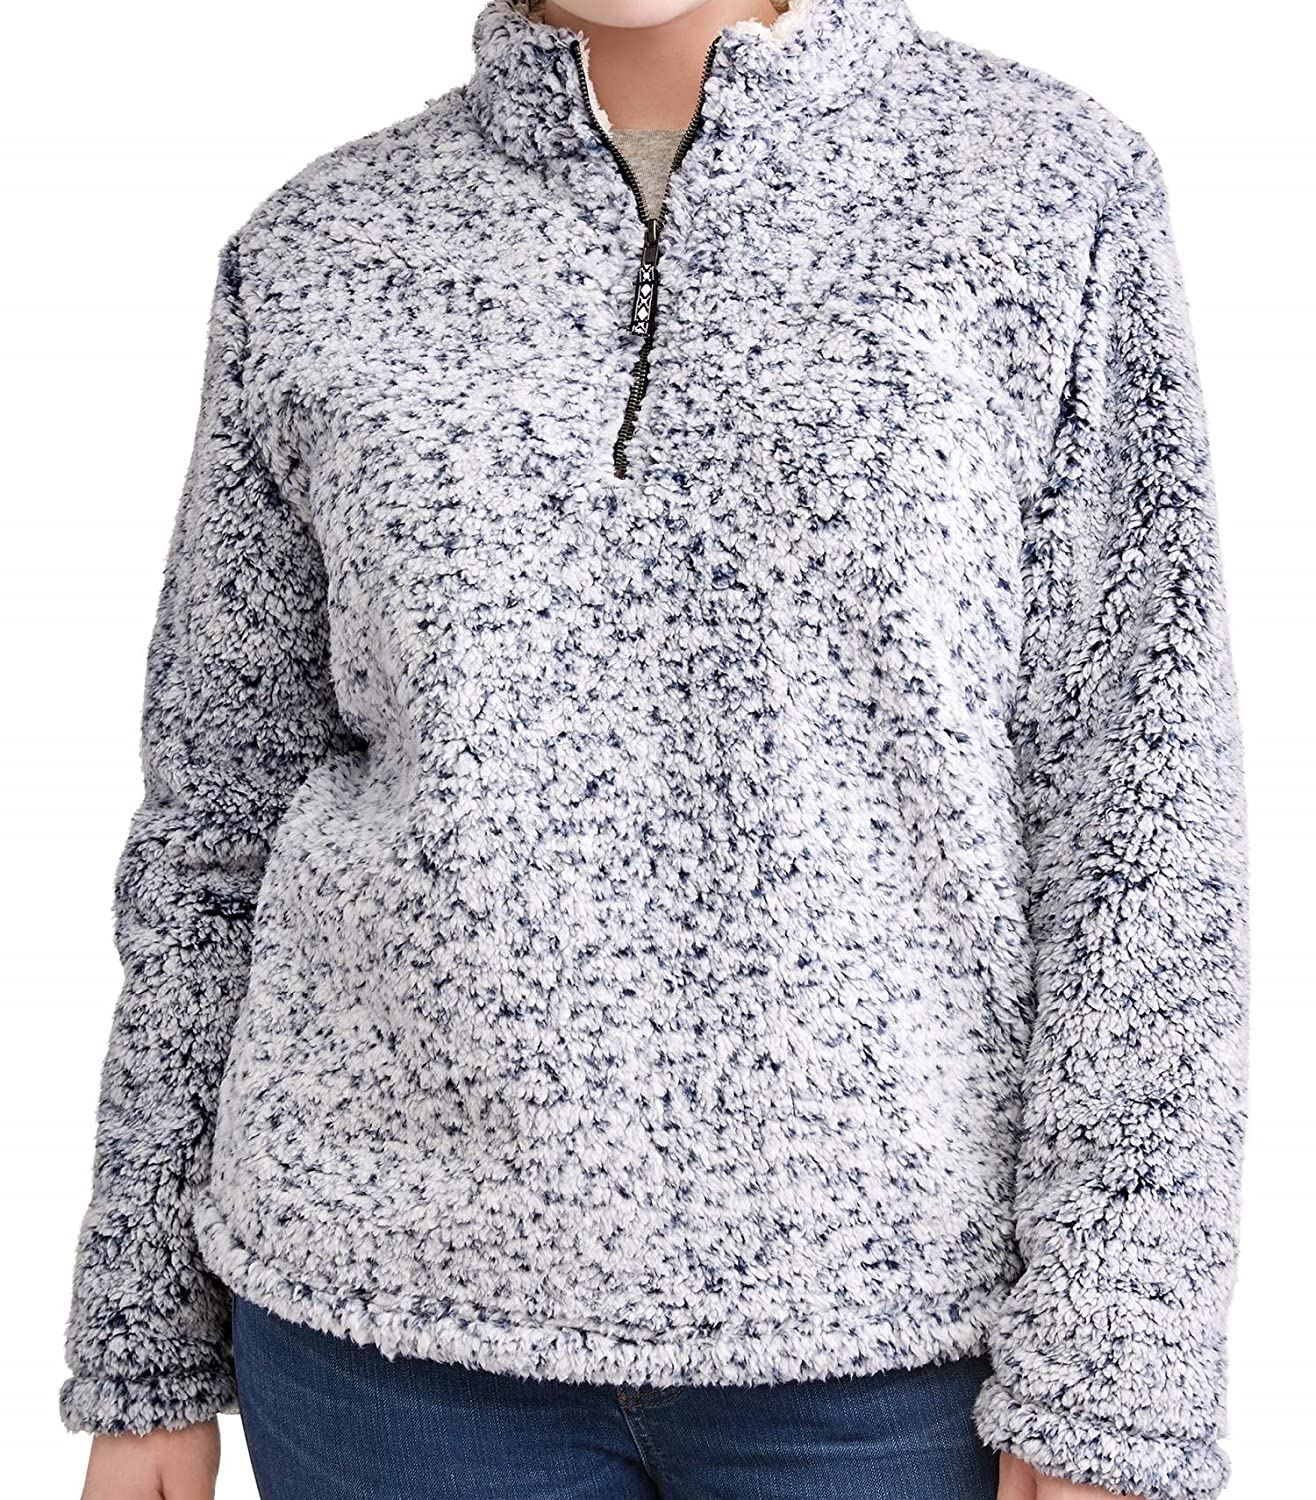 bluee Cove Time and True Women's Quarter Zip Jacket